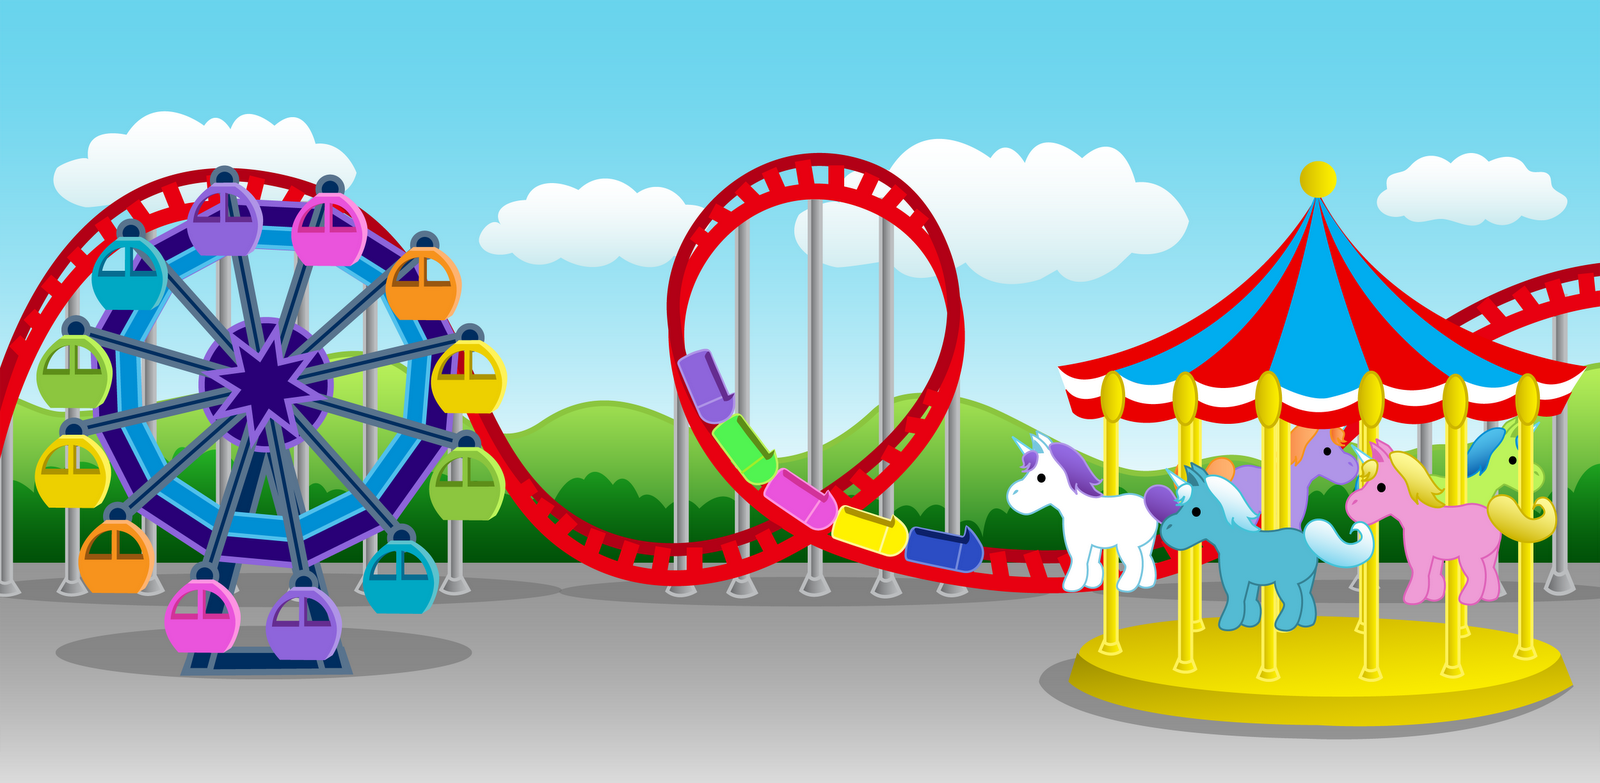 GALLERY FUNNY GAME: Amusement park clipart